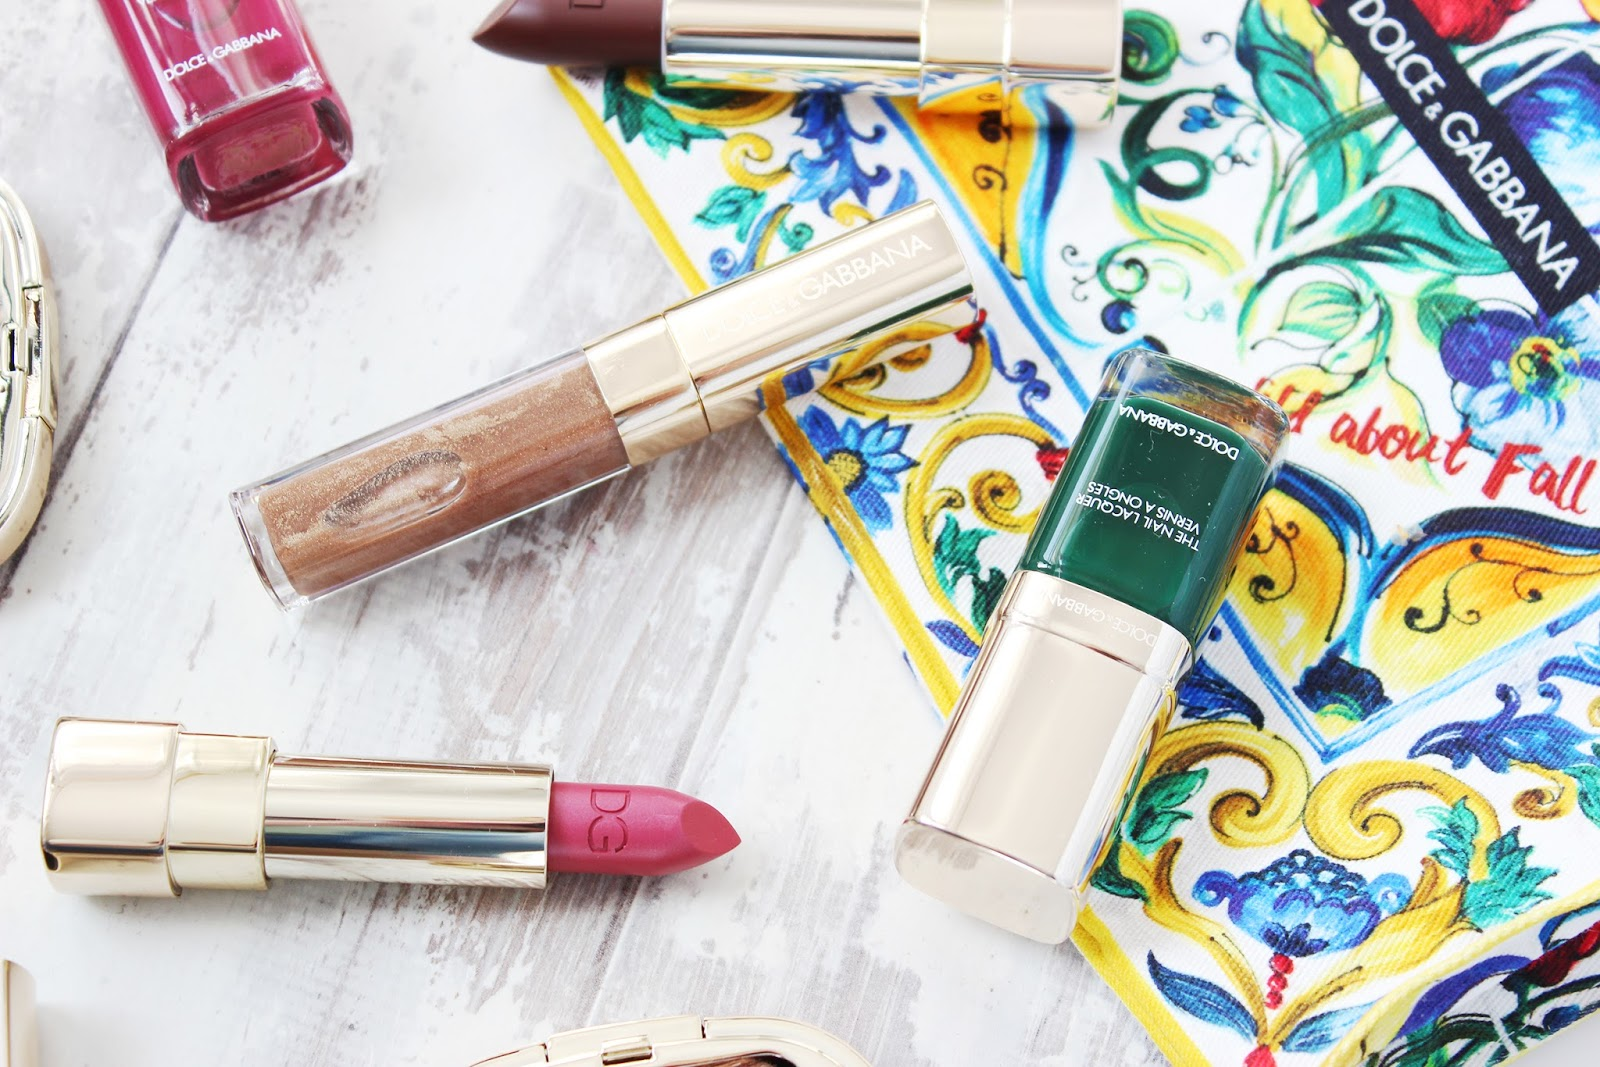 Dolce & Gabbana Wild about fall makeup collection review and swatches